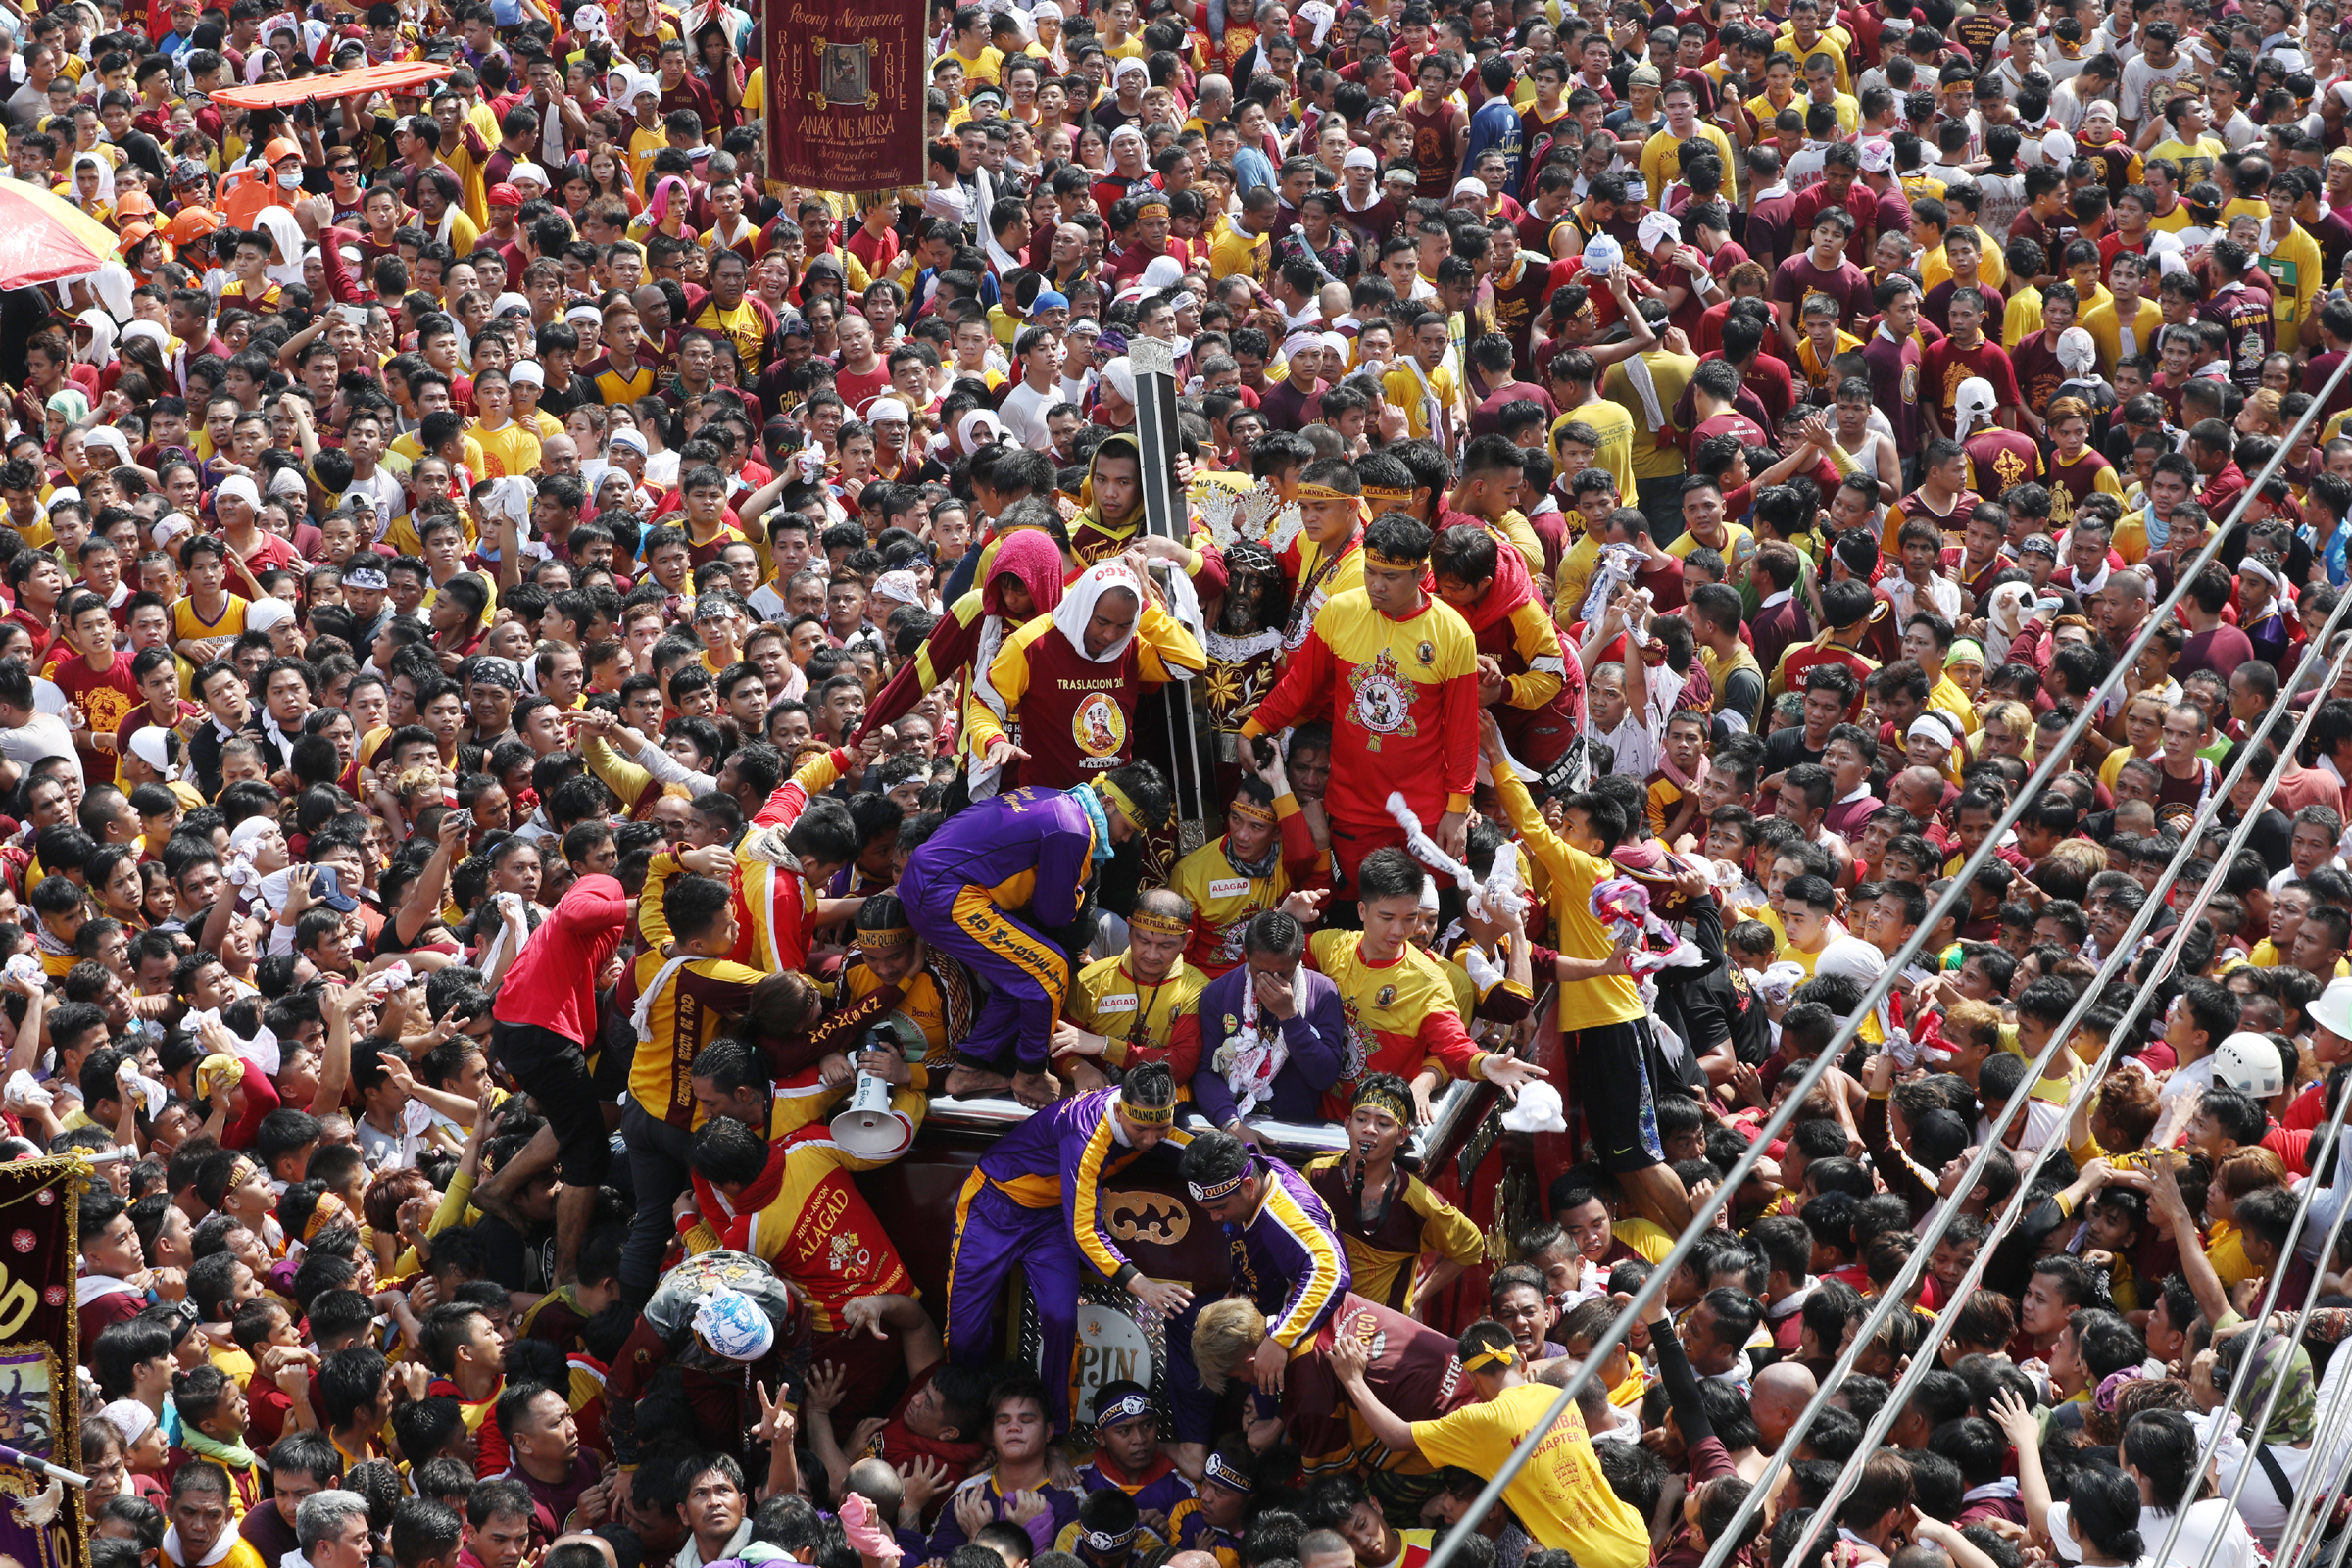 Traslacion 2018 ends as Black Nazarene returns home to Quiapo church